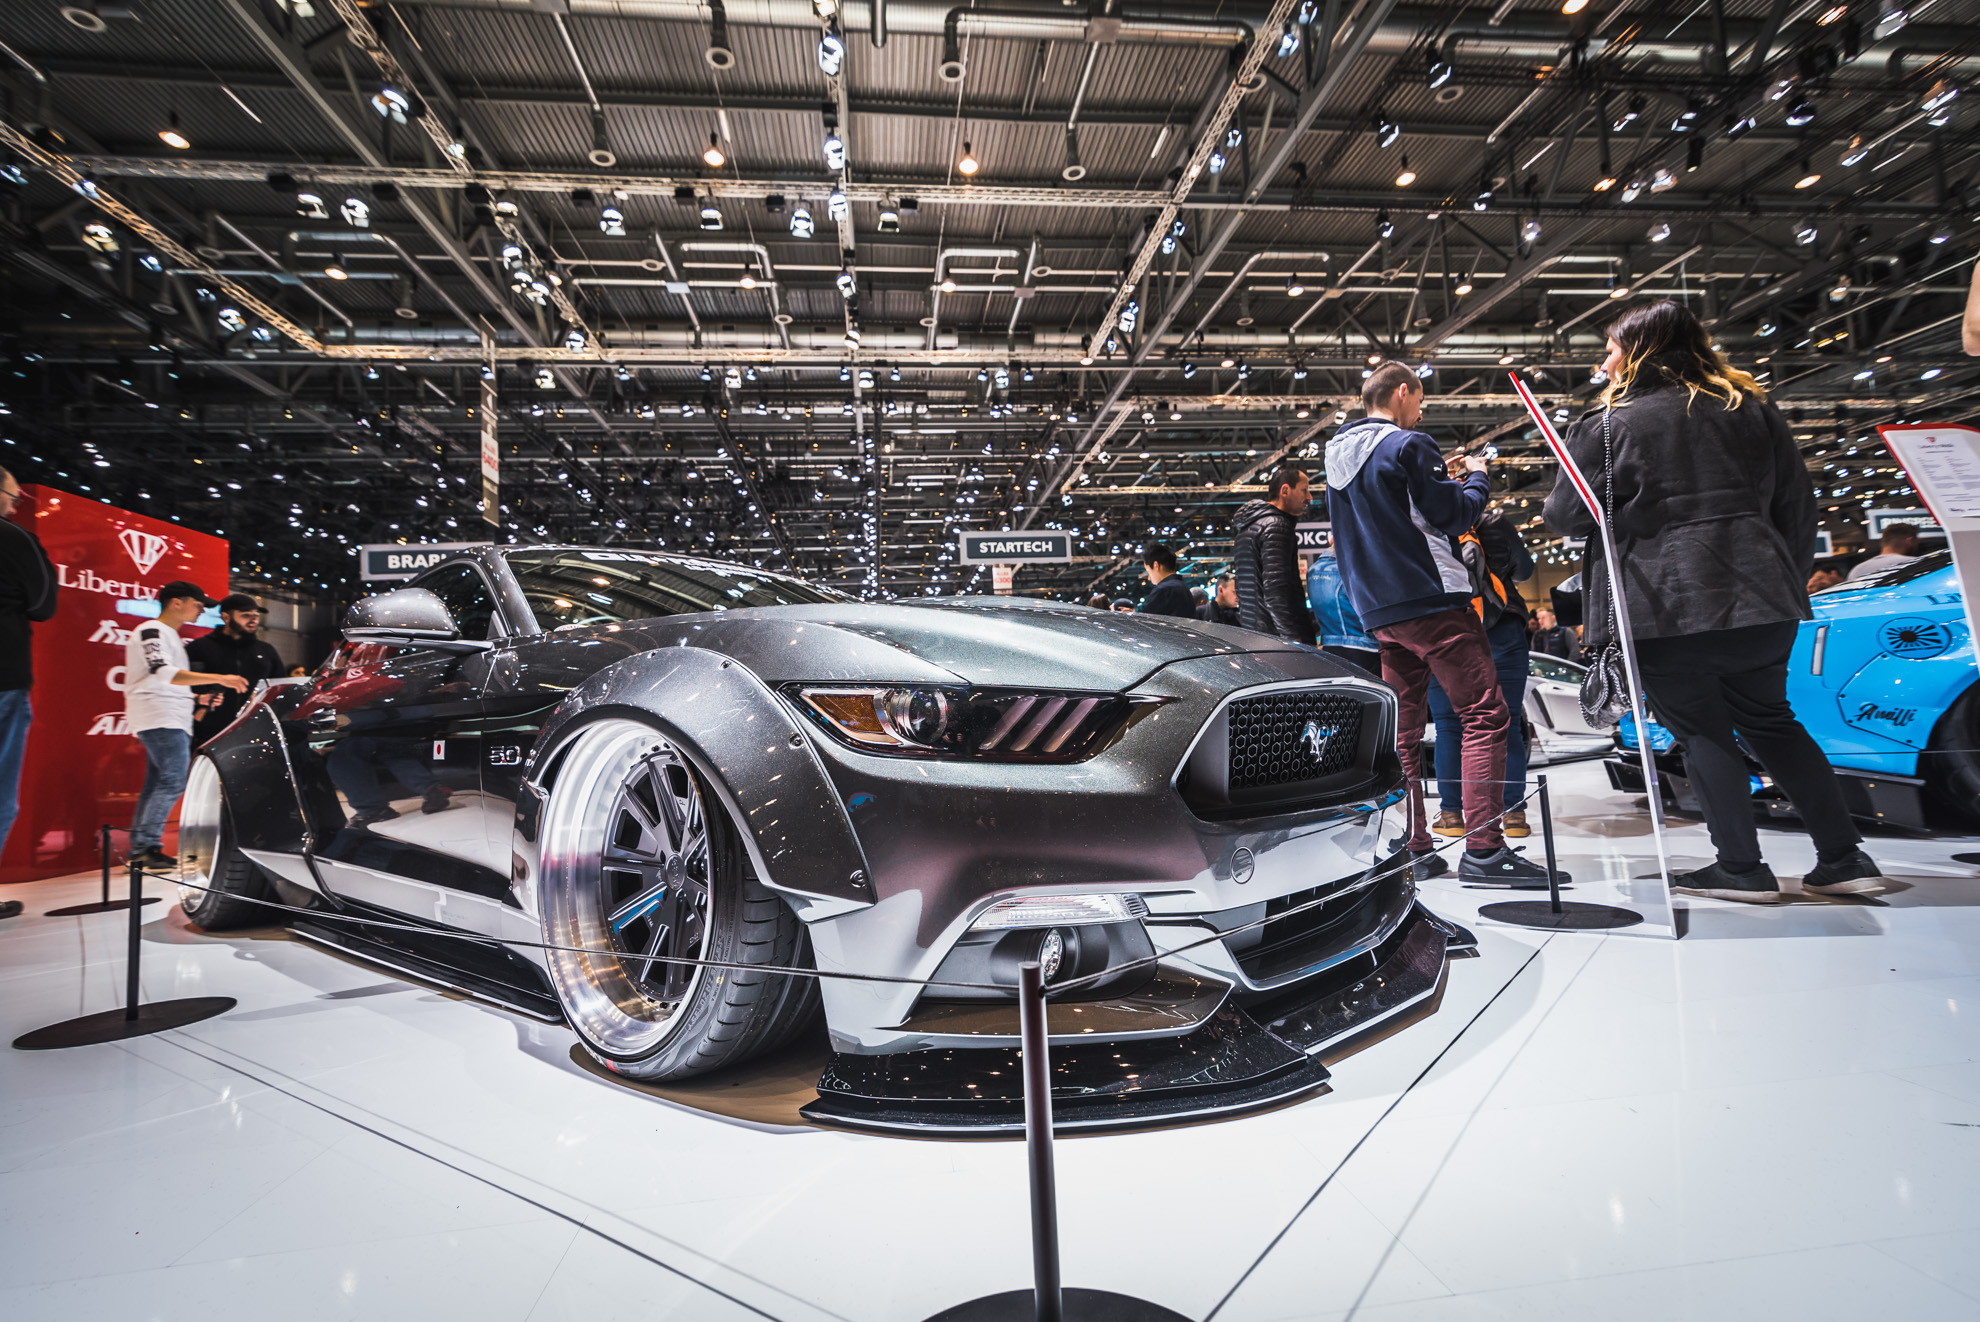 geneva-international-motor-show-igors-sinitsins-21